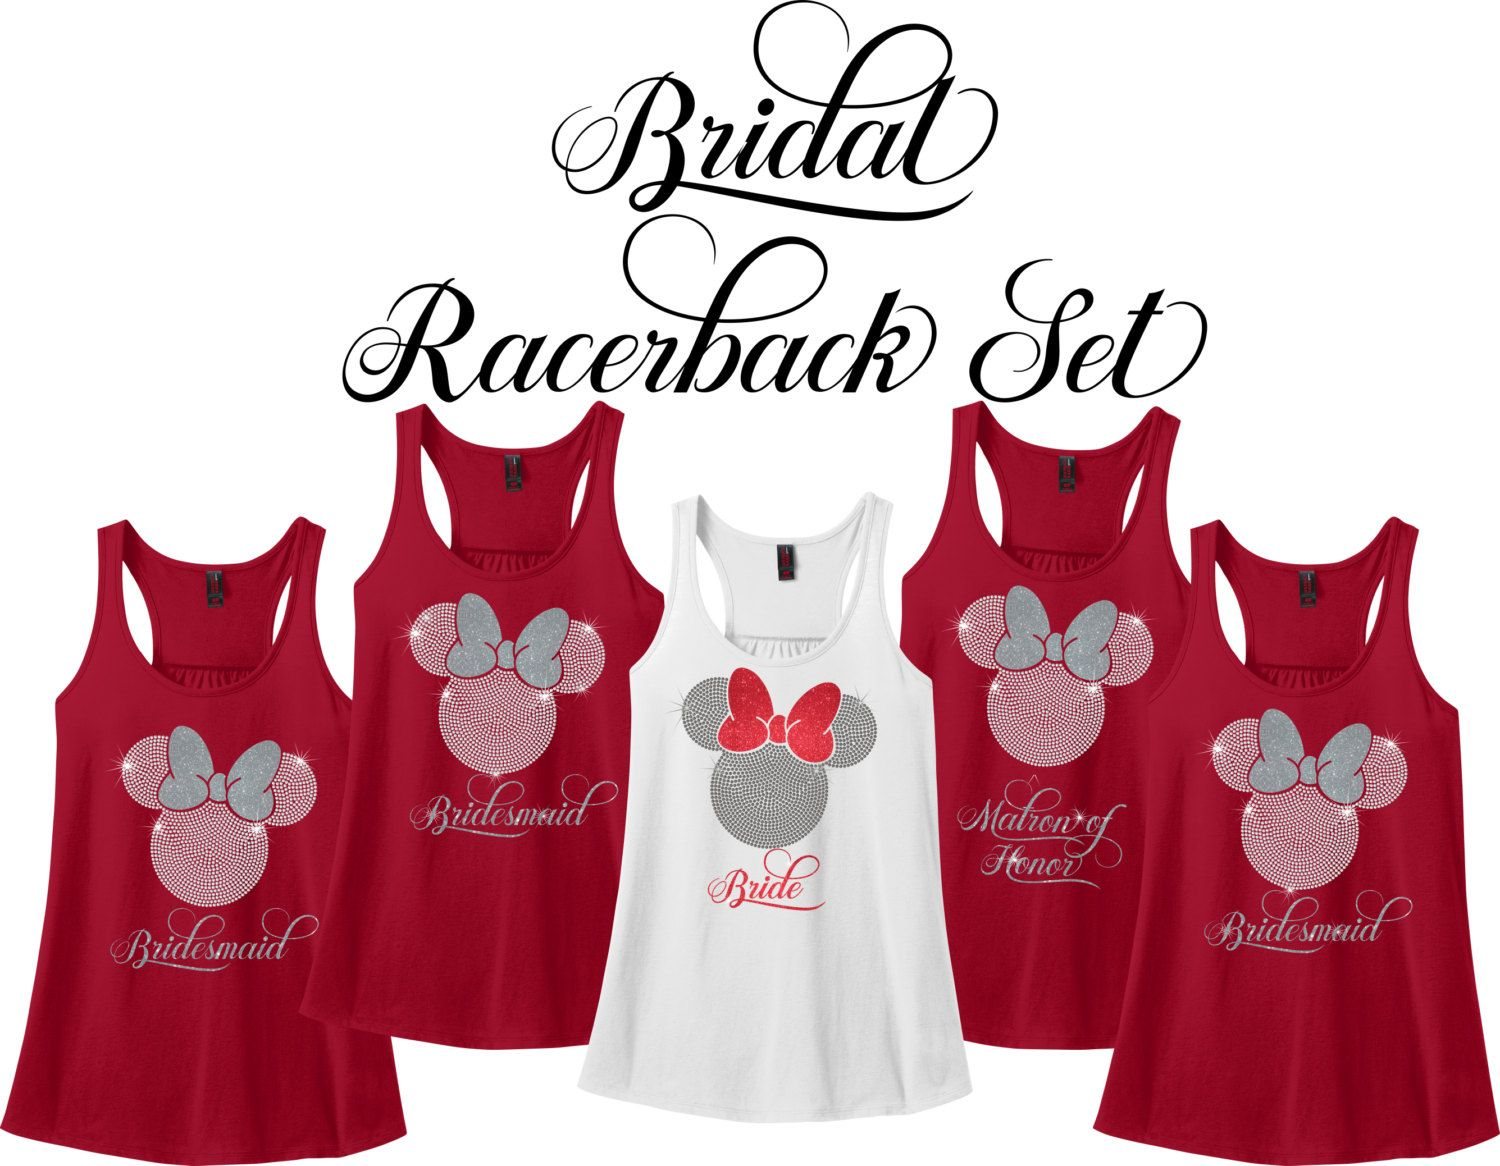 Minnie Mouse Bridal Party Racerback Set Wedding Party Tank Etsy Wedding Party Shirts Wedding Party Outfits Wedding Party Tanks